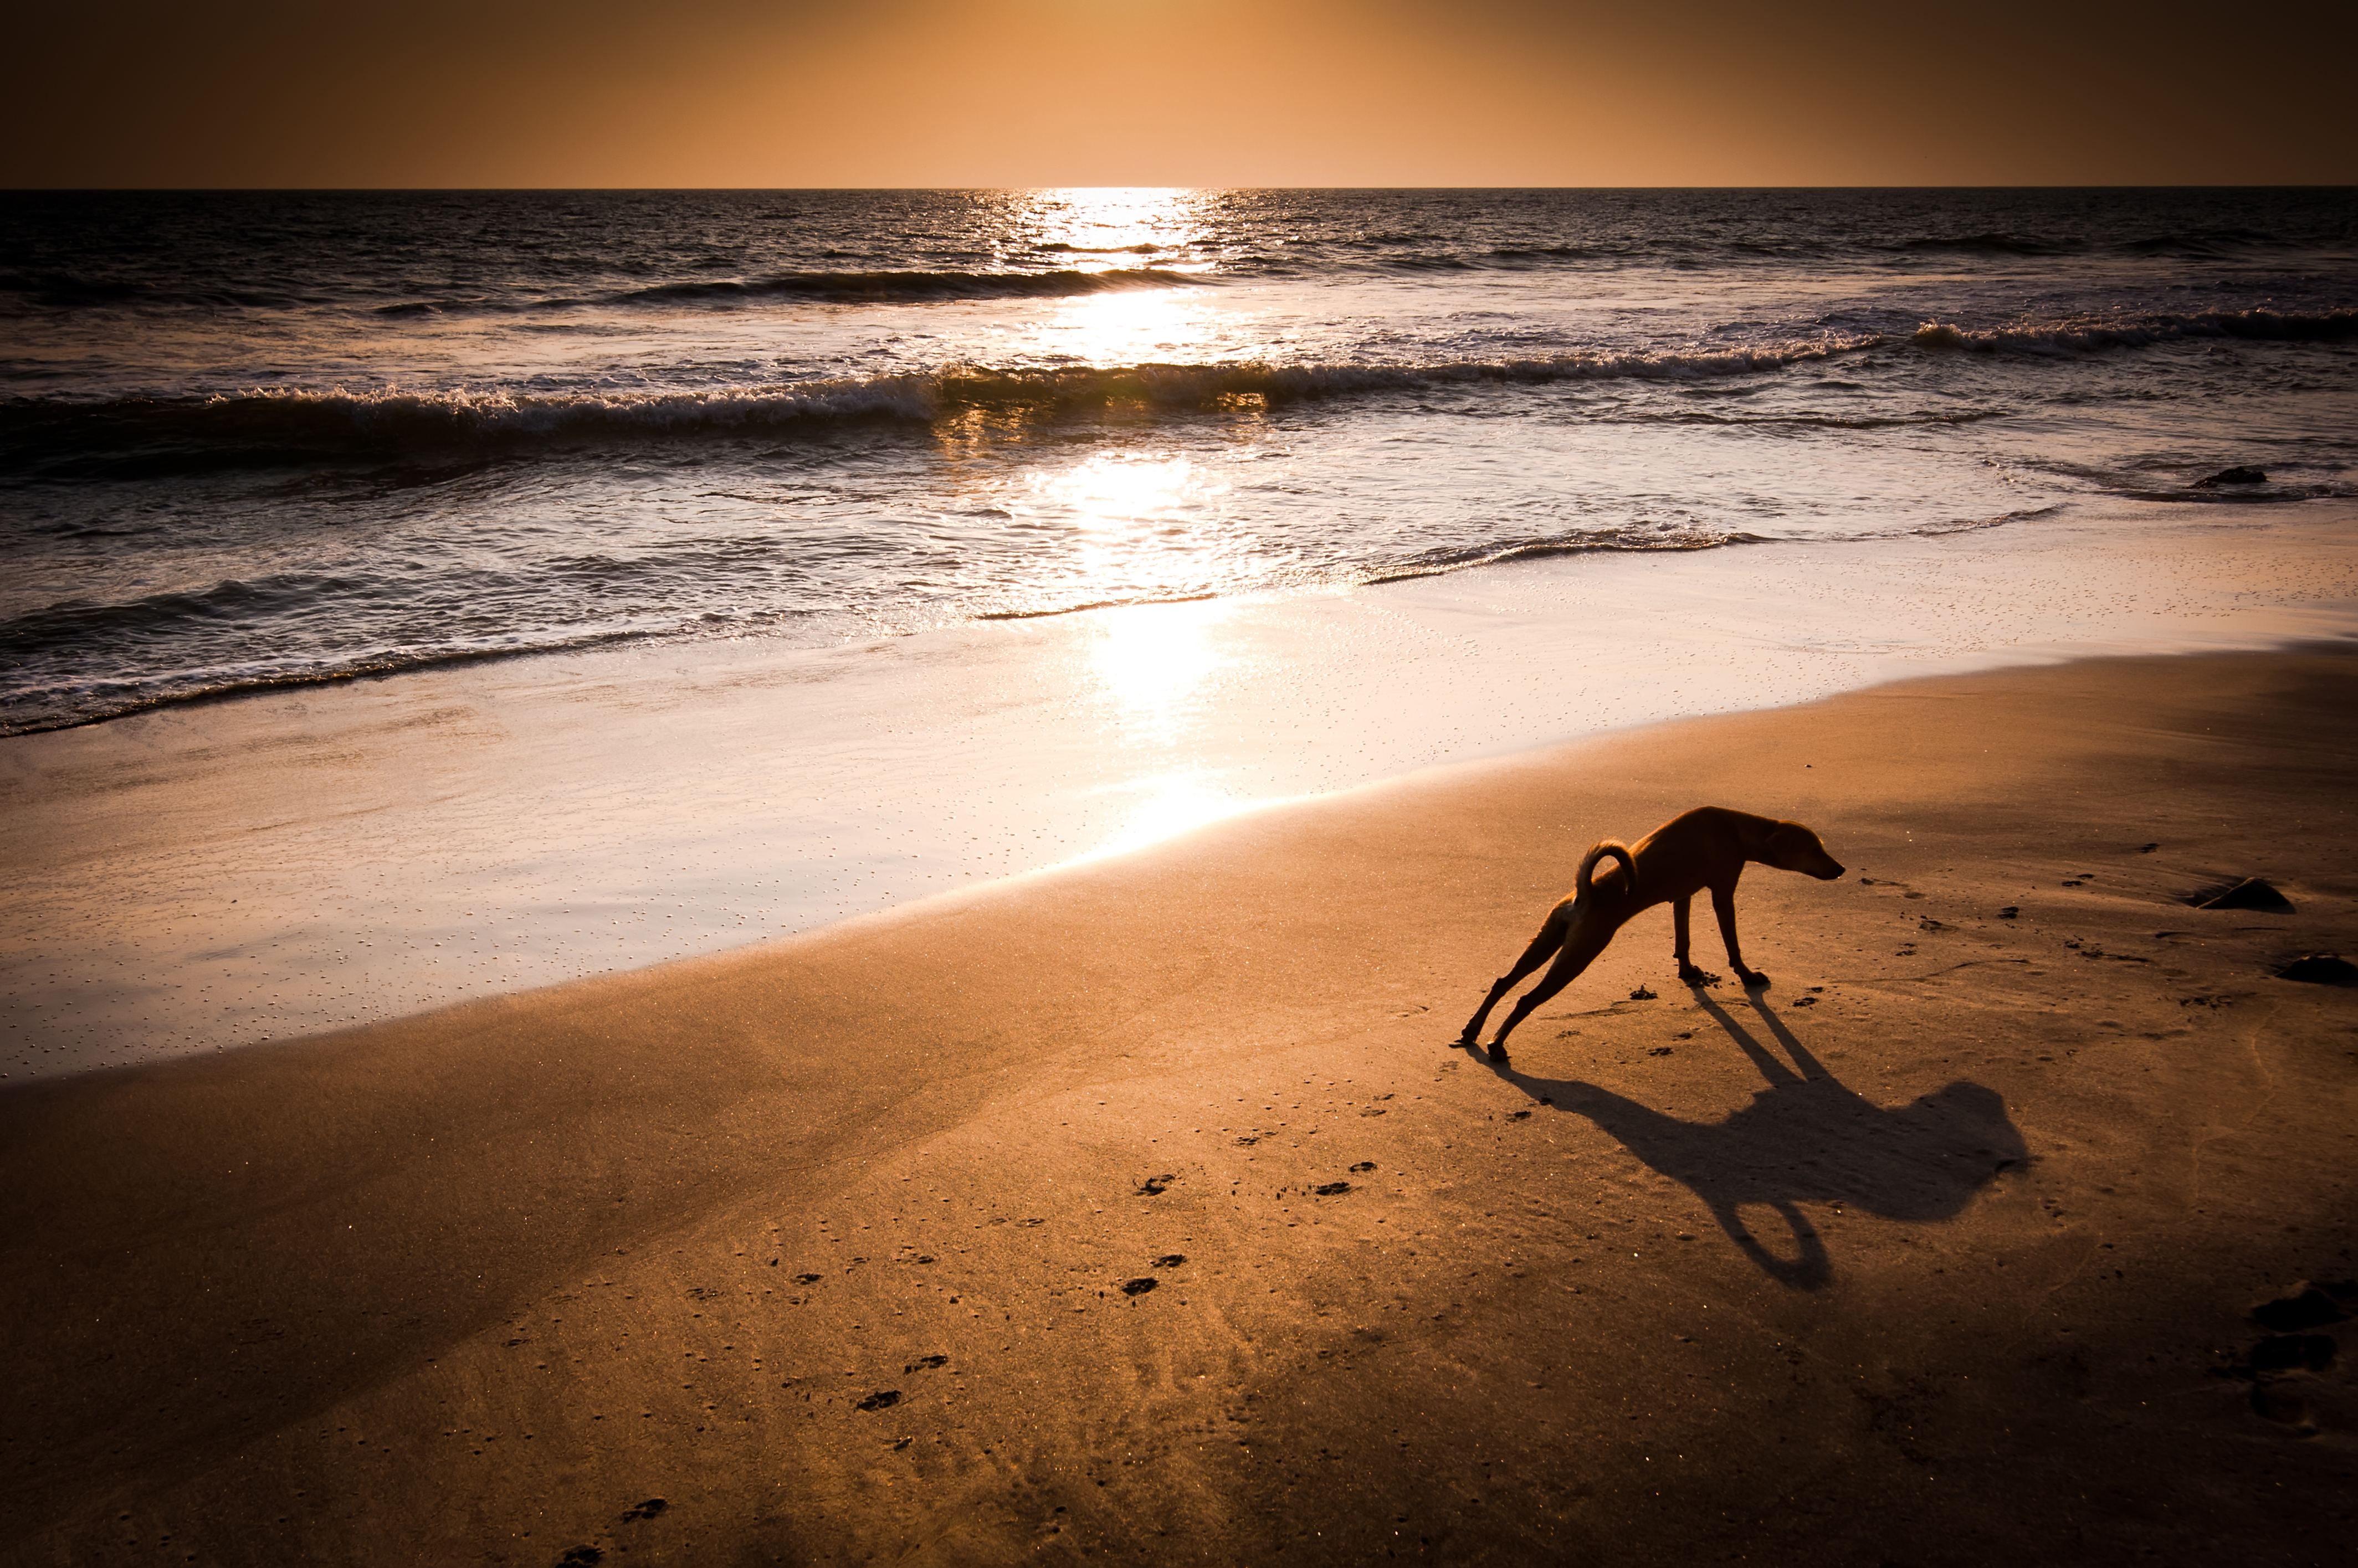 Concept idea of dog yoga. Dog in yoga position Urdhva Mukha Svanasana (Upward Facing Dog) at tropical beach under evening sun. India